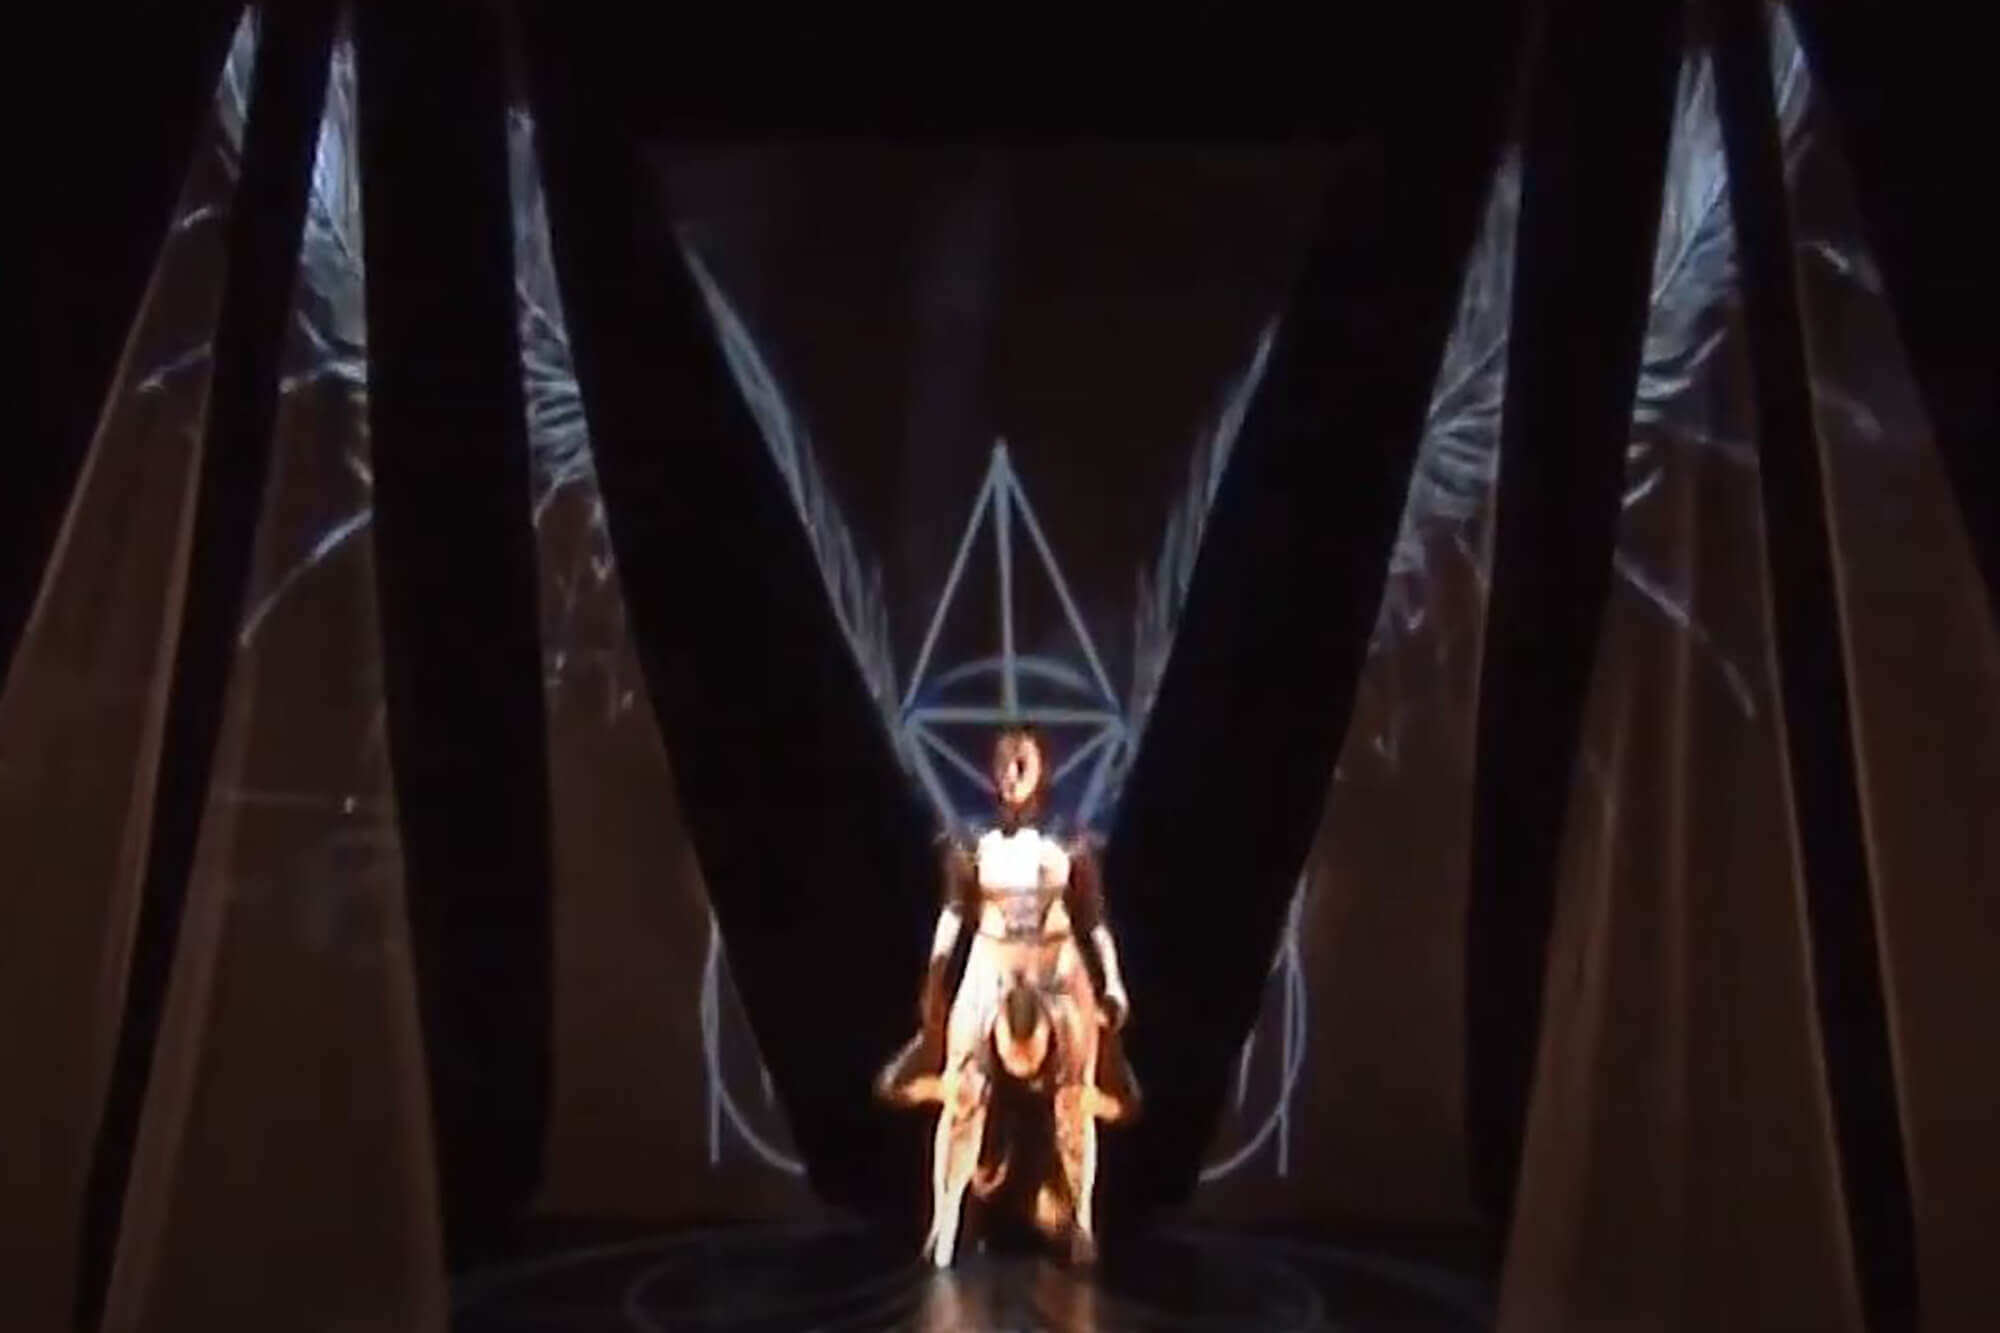 A dancer stands centre stage with wings created by lighting effects.